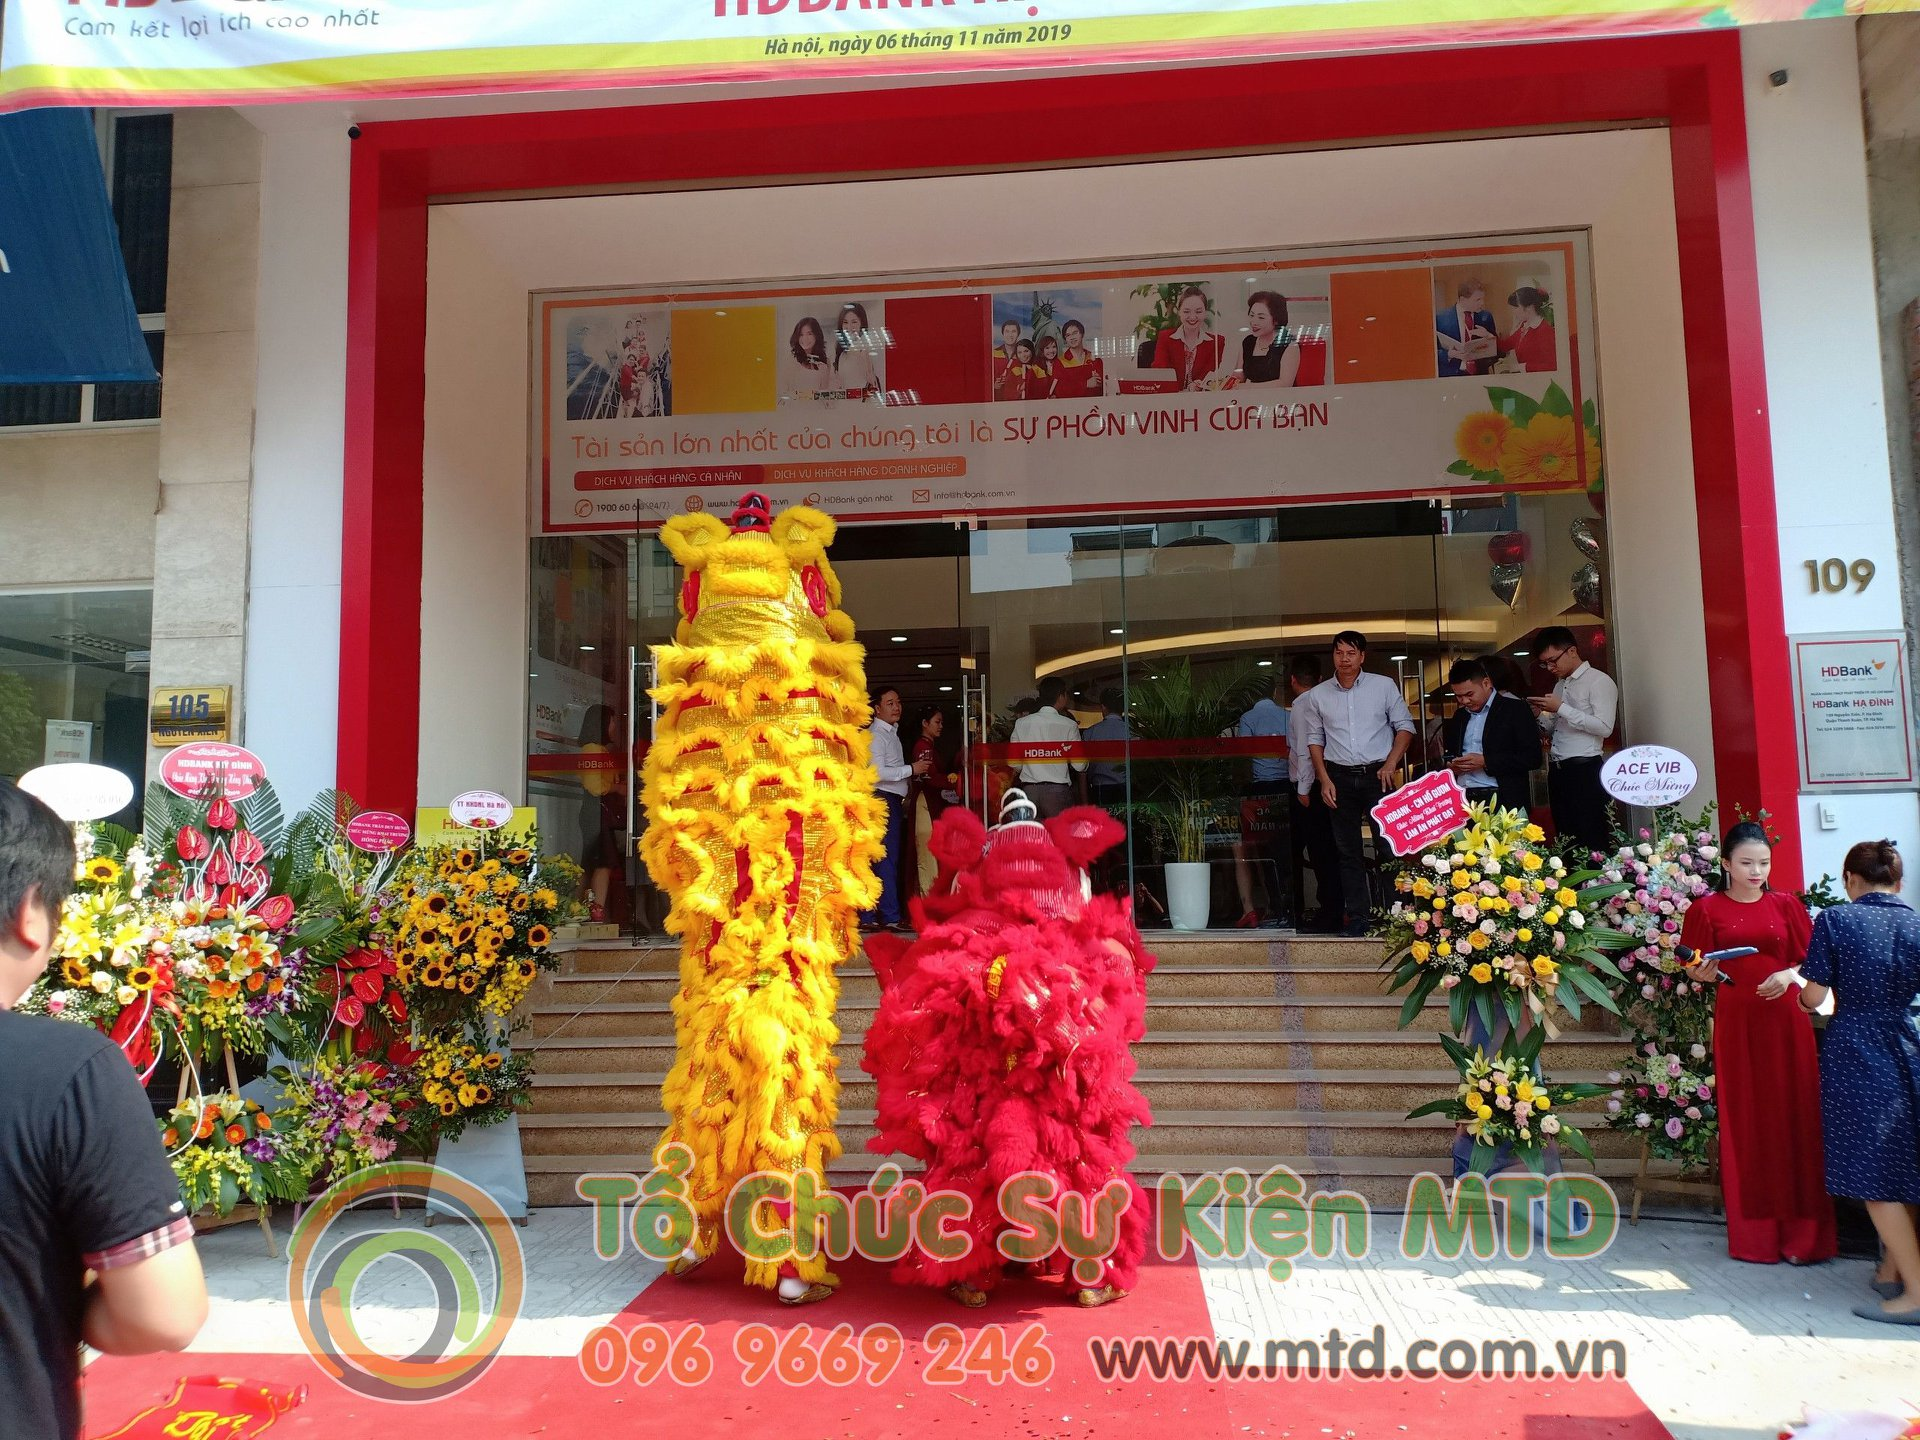 hd-bank-ha-dinh-2